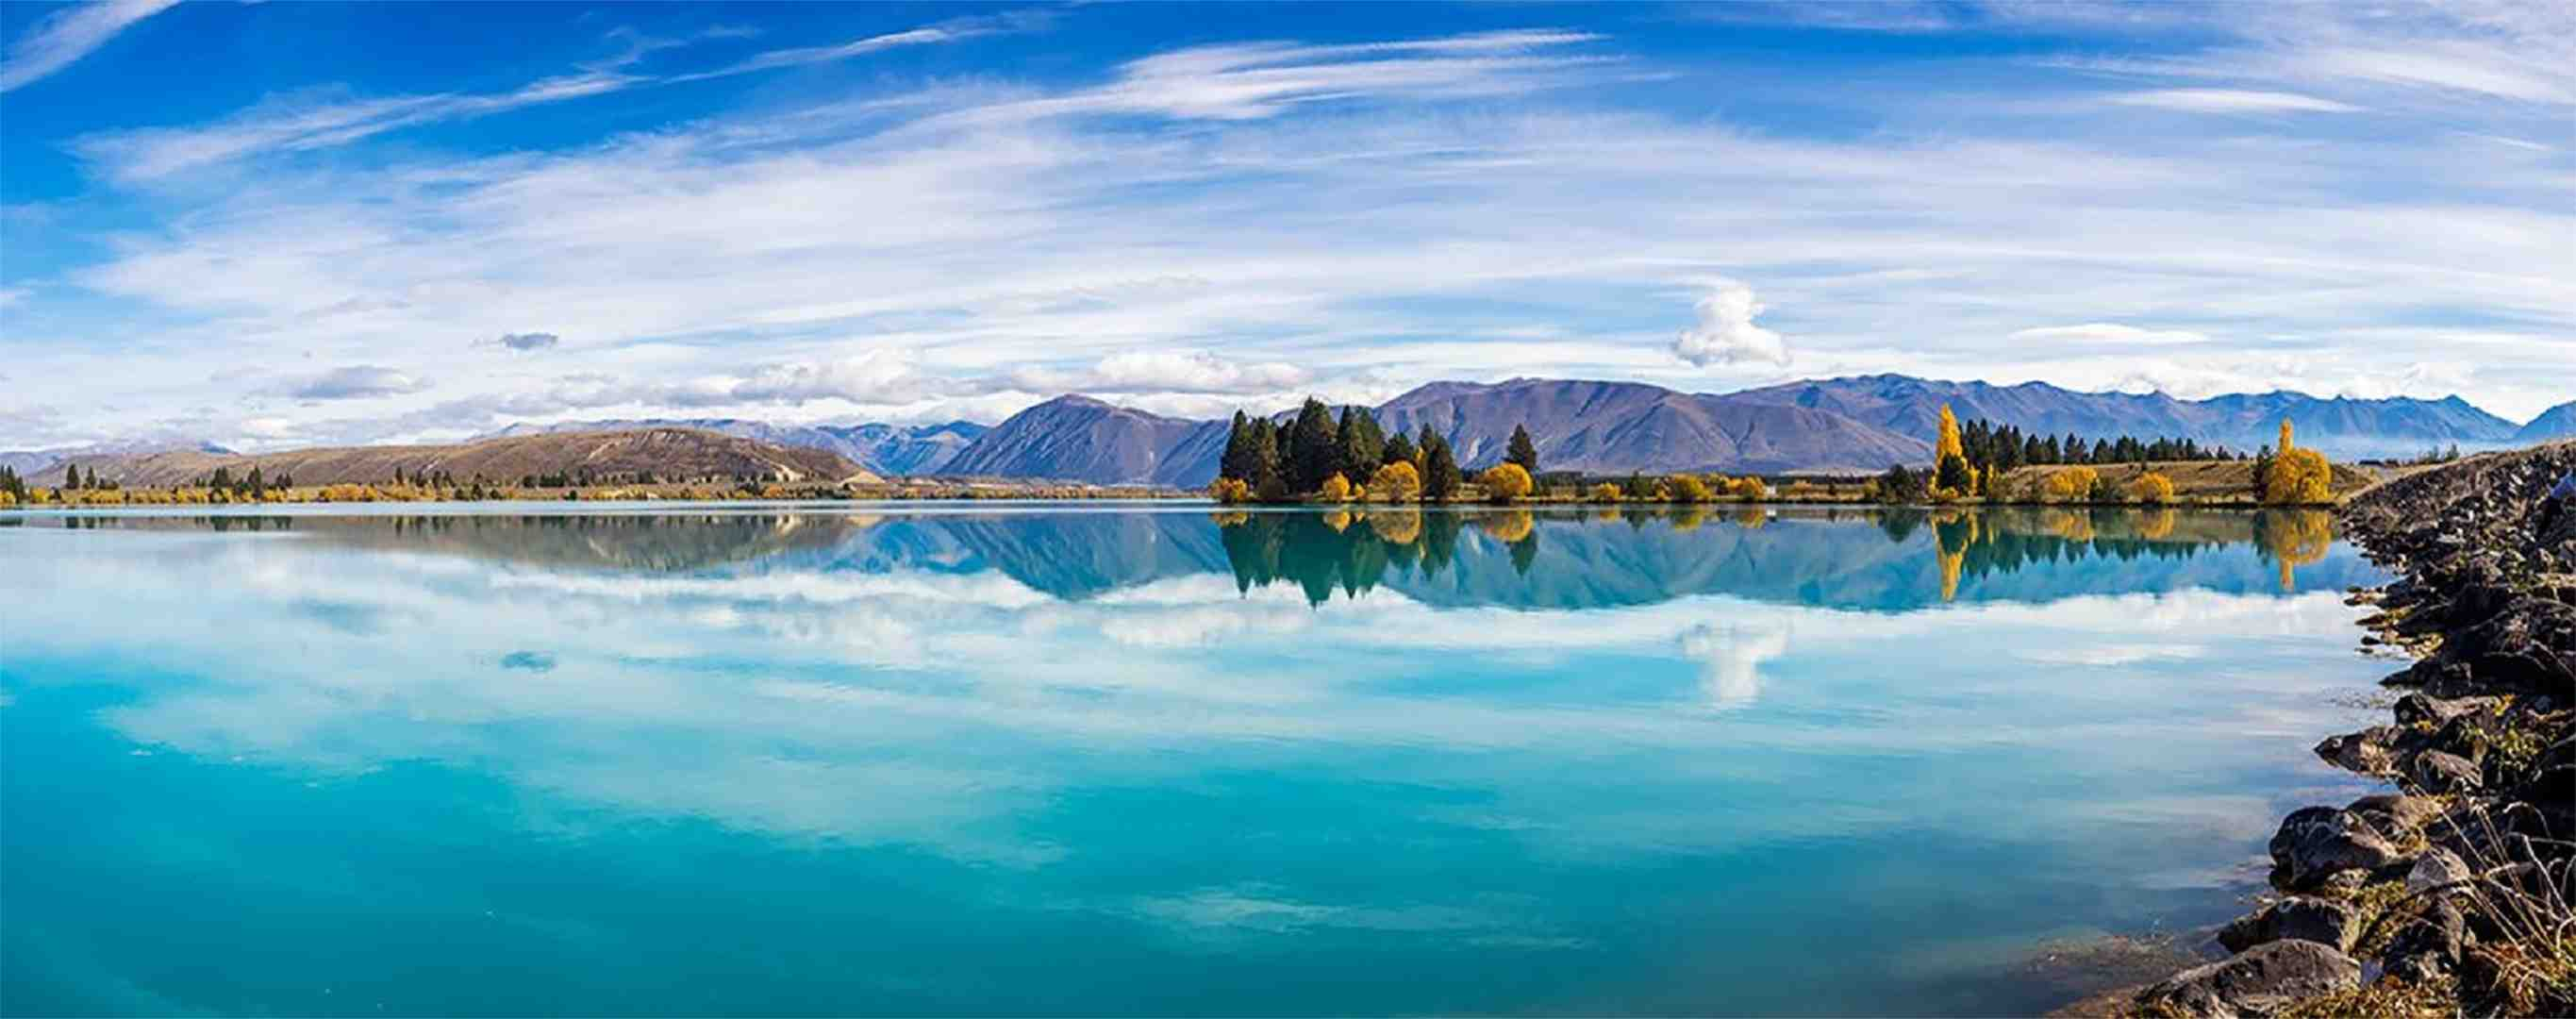 Holidays in the Mackenzie Country